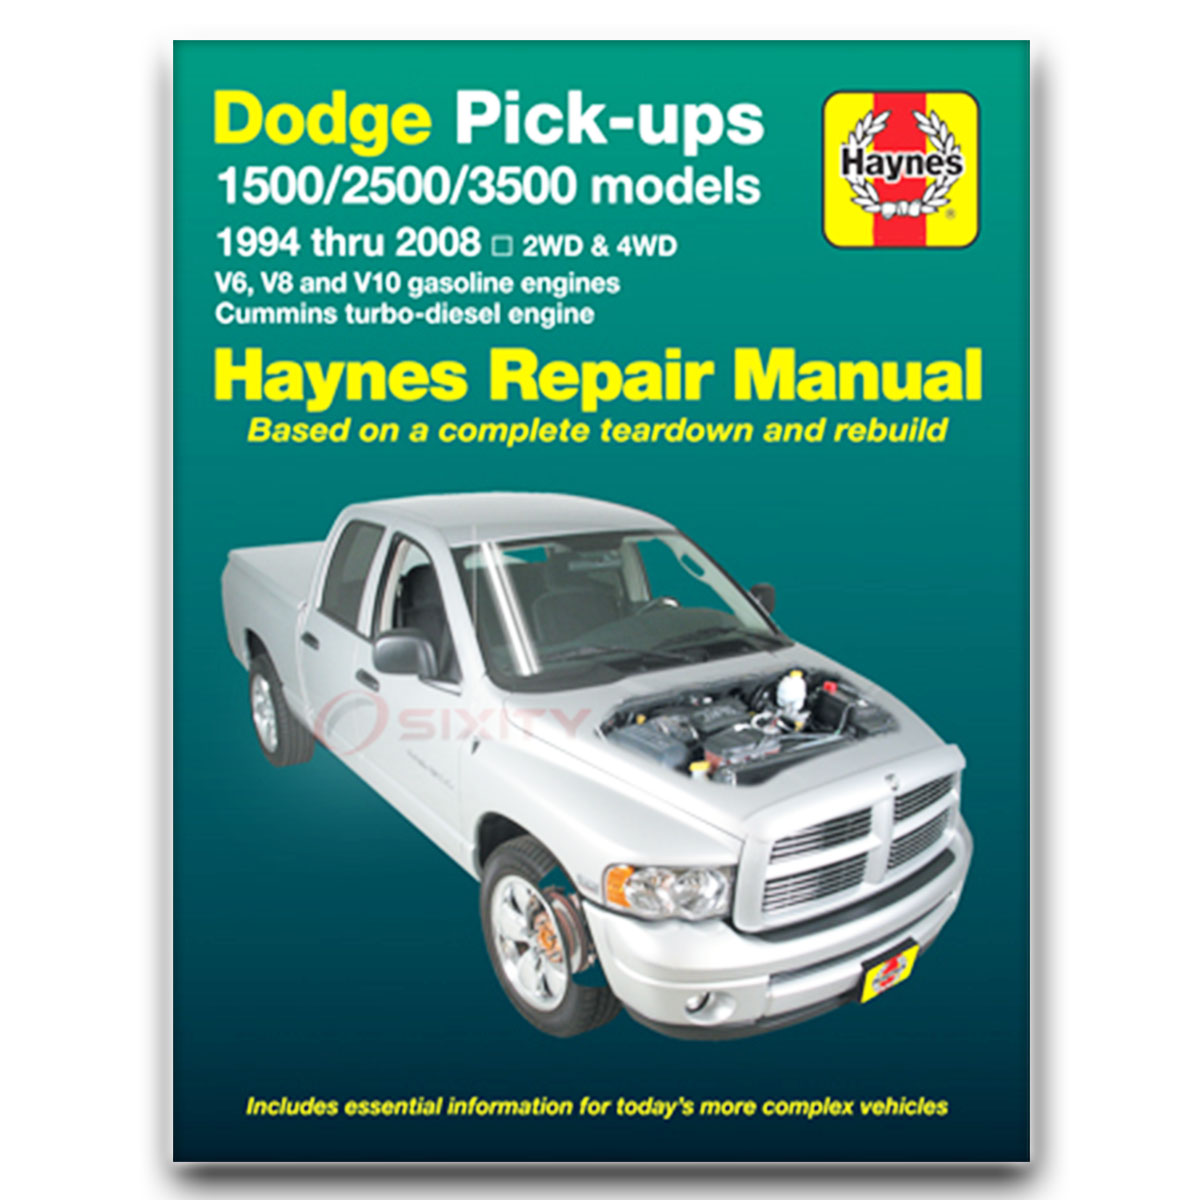 dodge ram 2500 v10 repair manual open source user manual u2022 rh dramatic varieties com 1995 dodge ram 3500 service manual 1995 dodge ram 3500 service manual